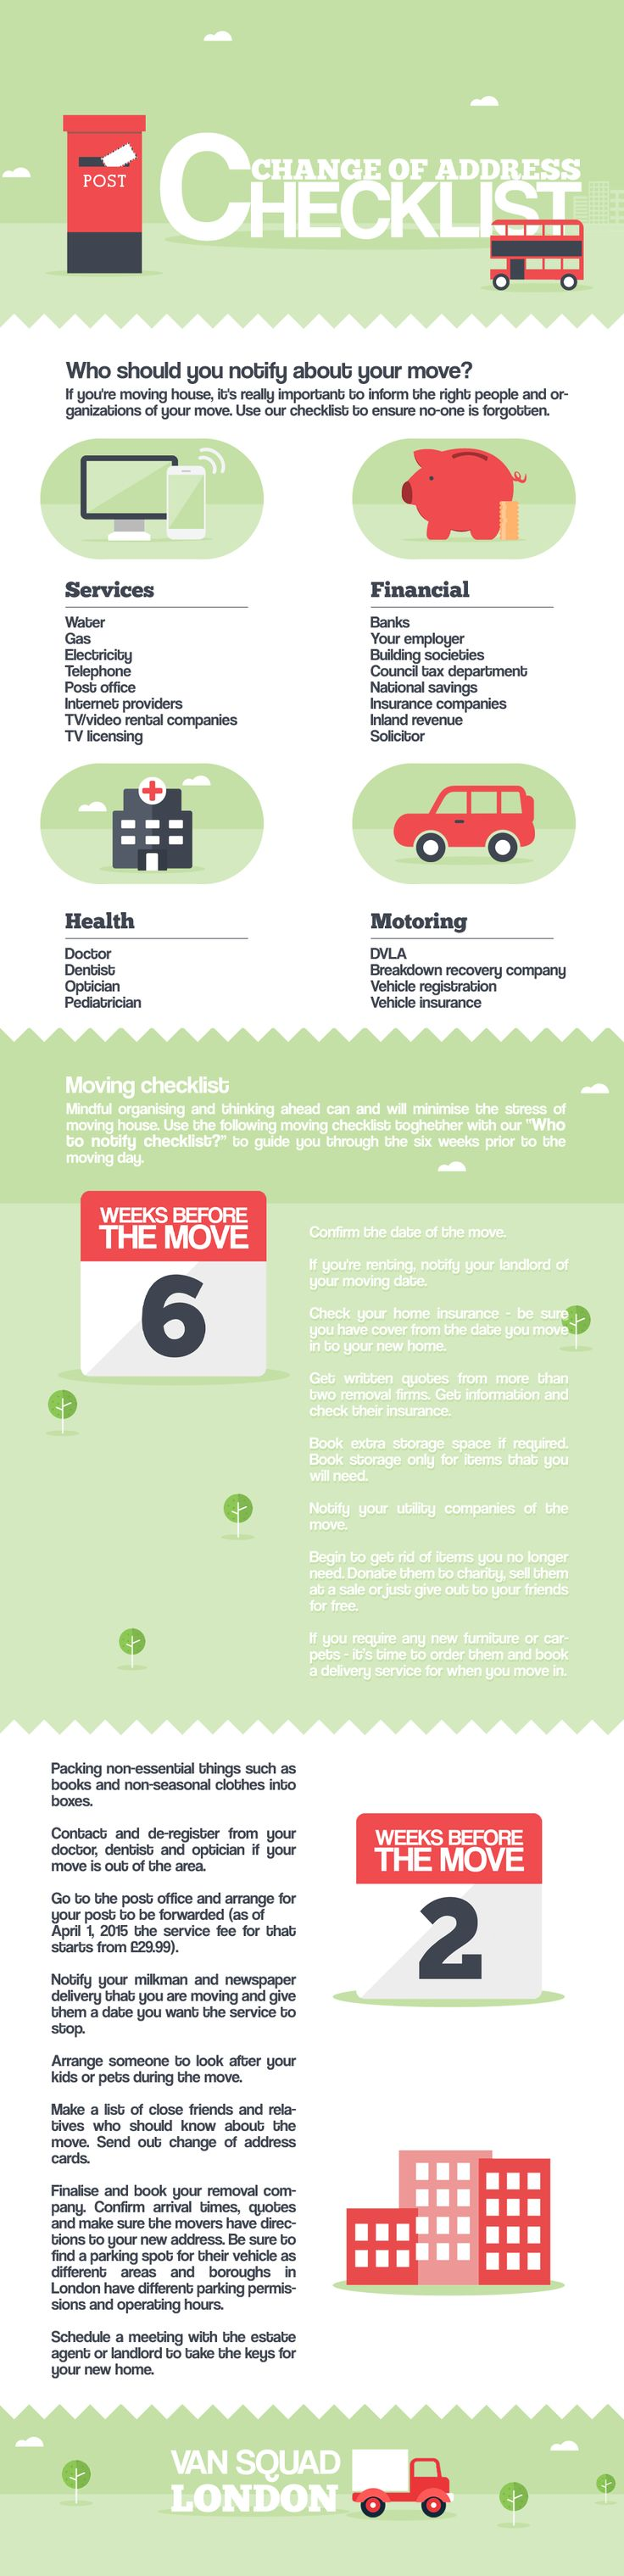 Change of Address Checklist Infographic                                                                                                                                                                                 More